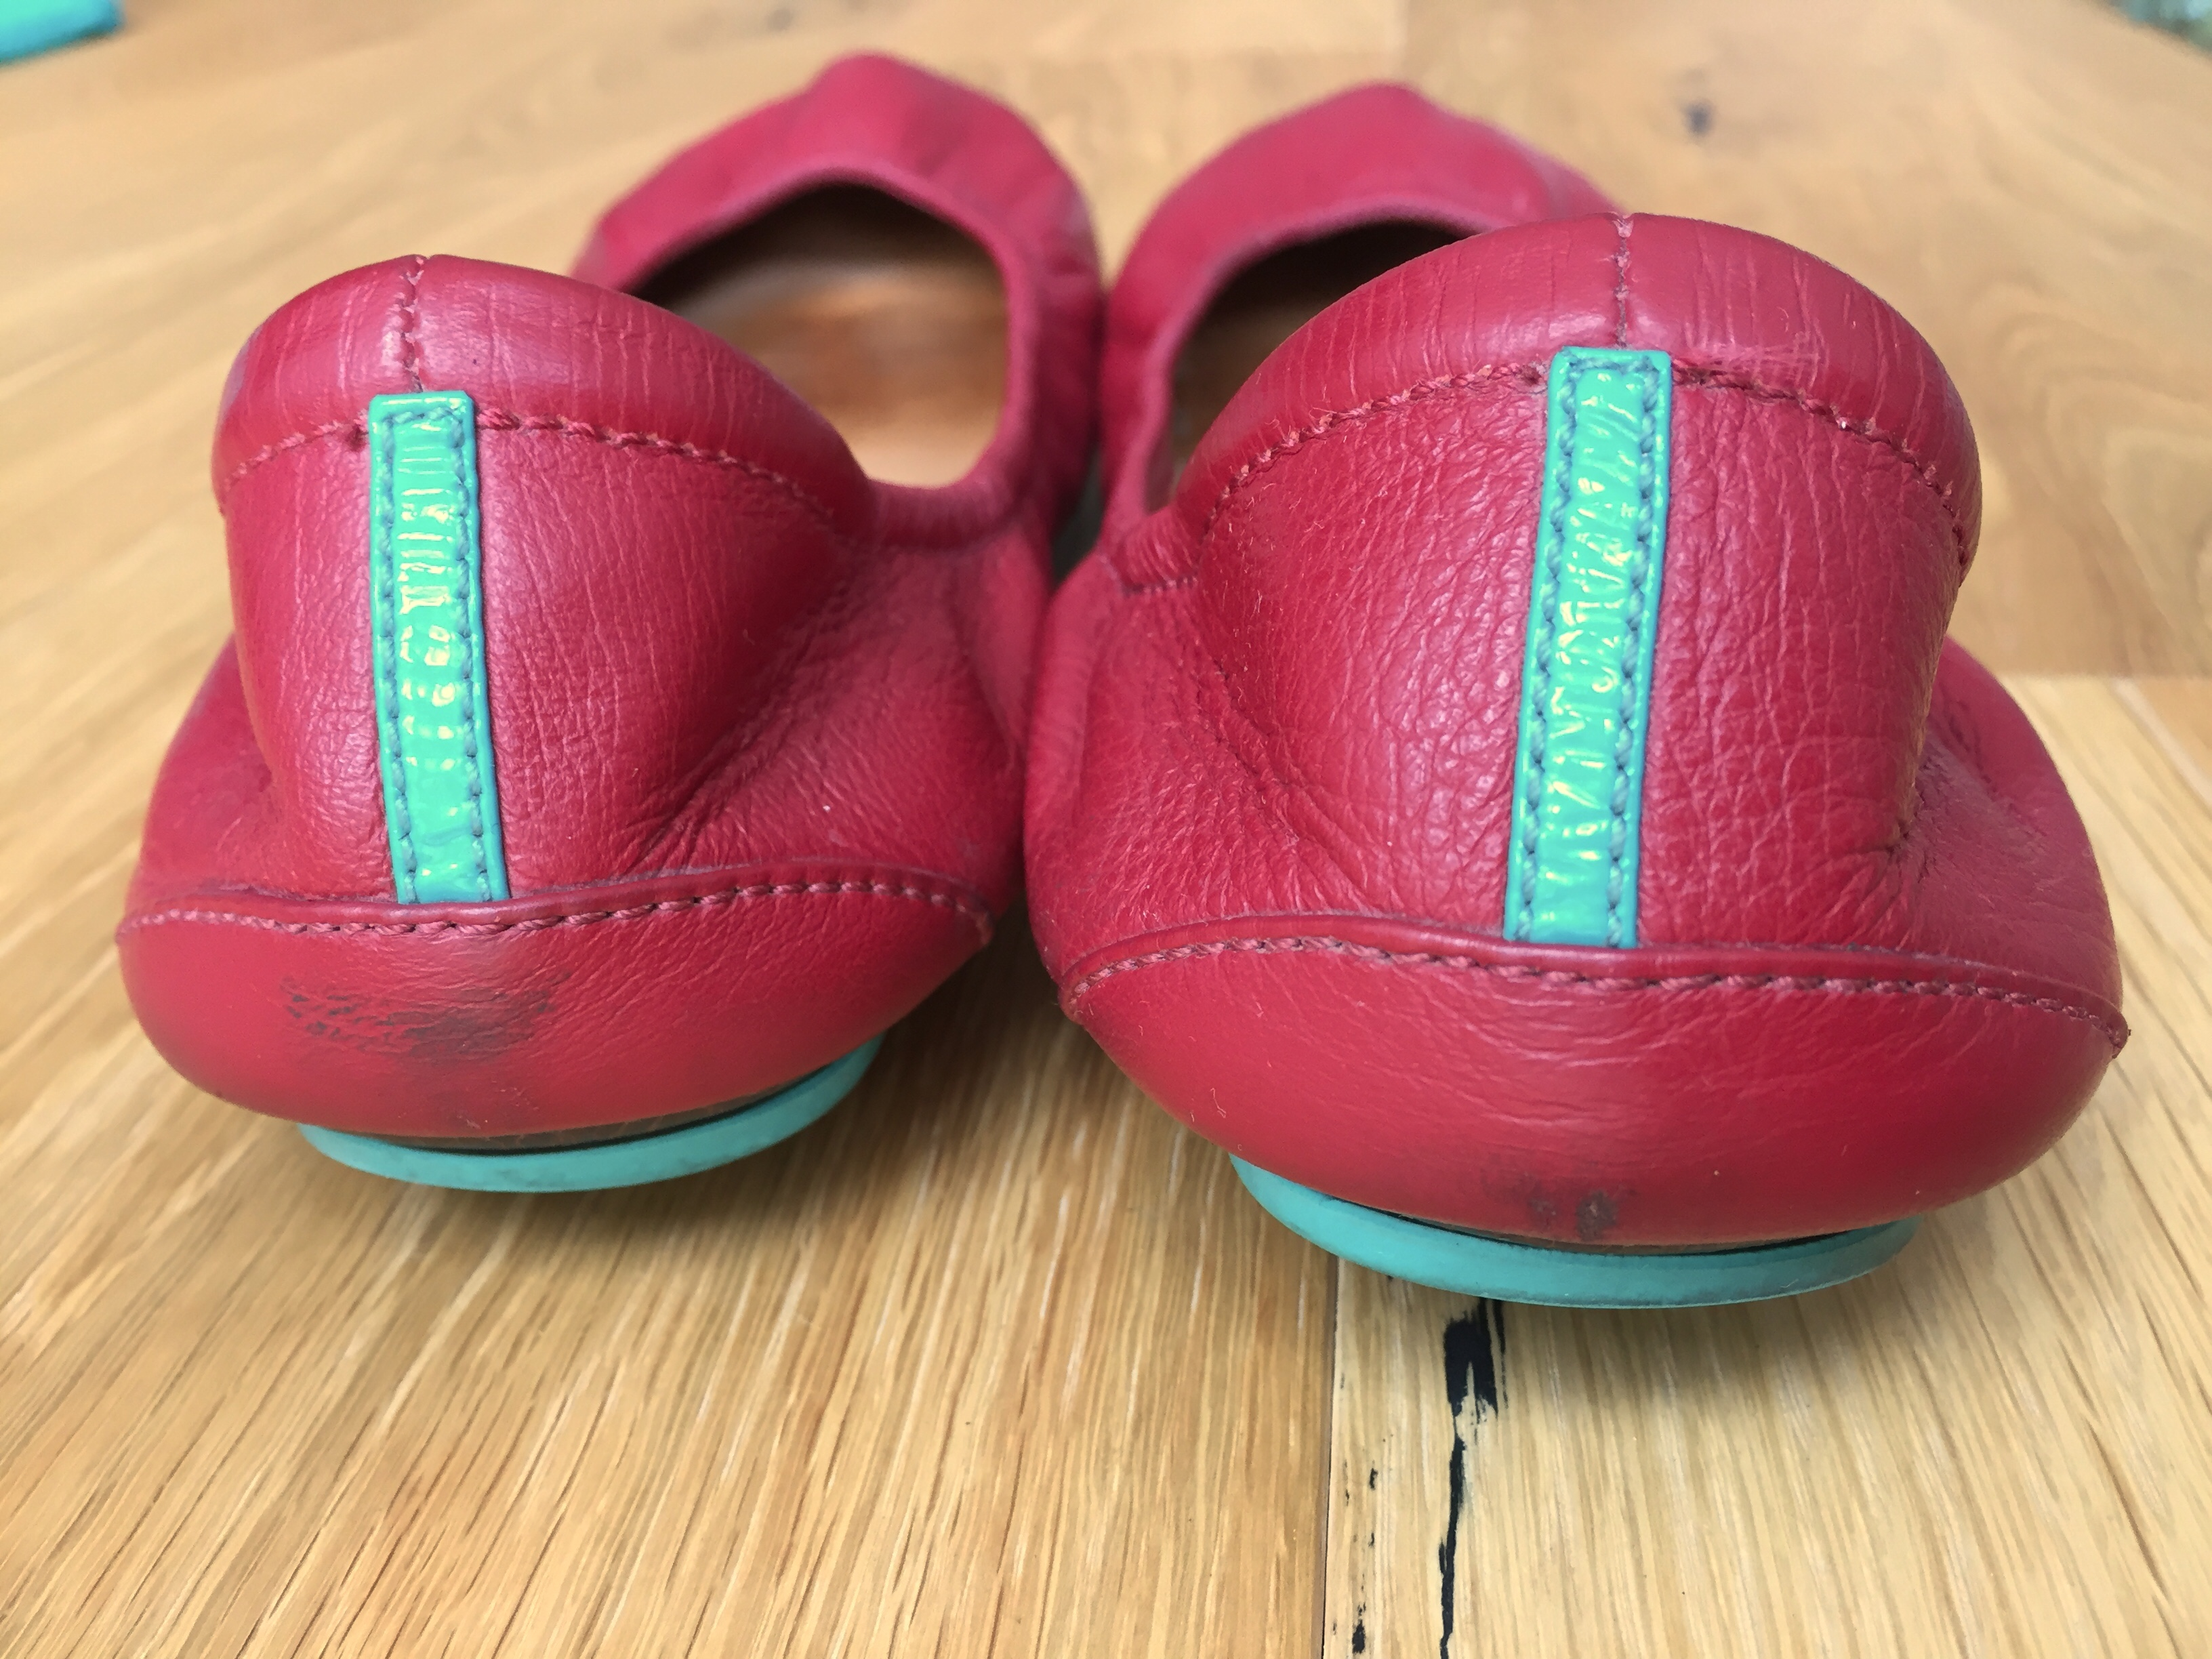 Tieks Review - Cardinal Red